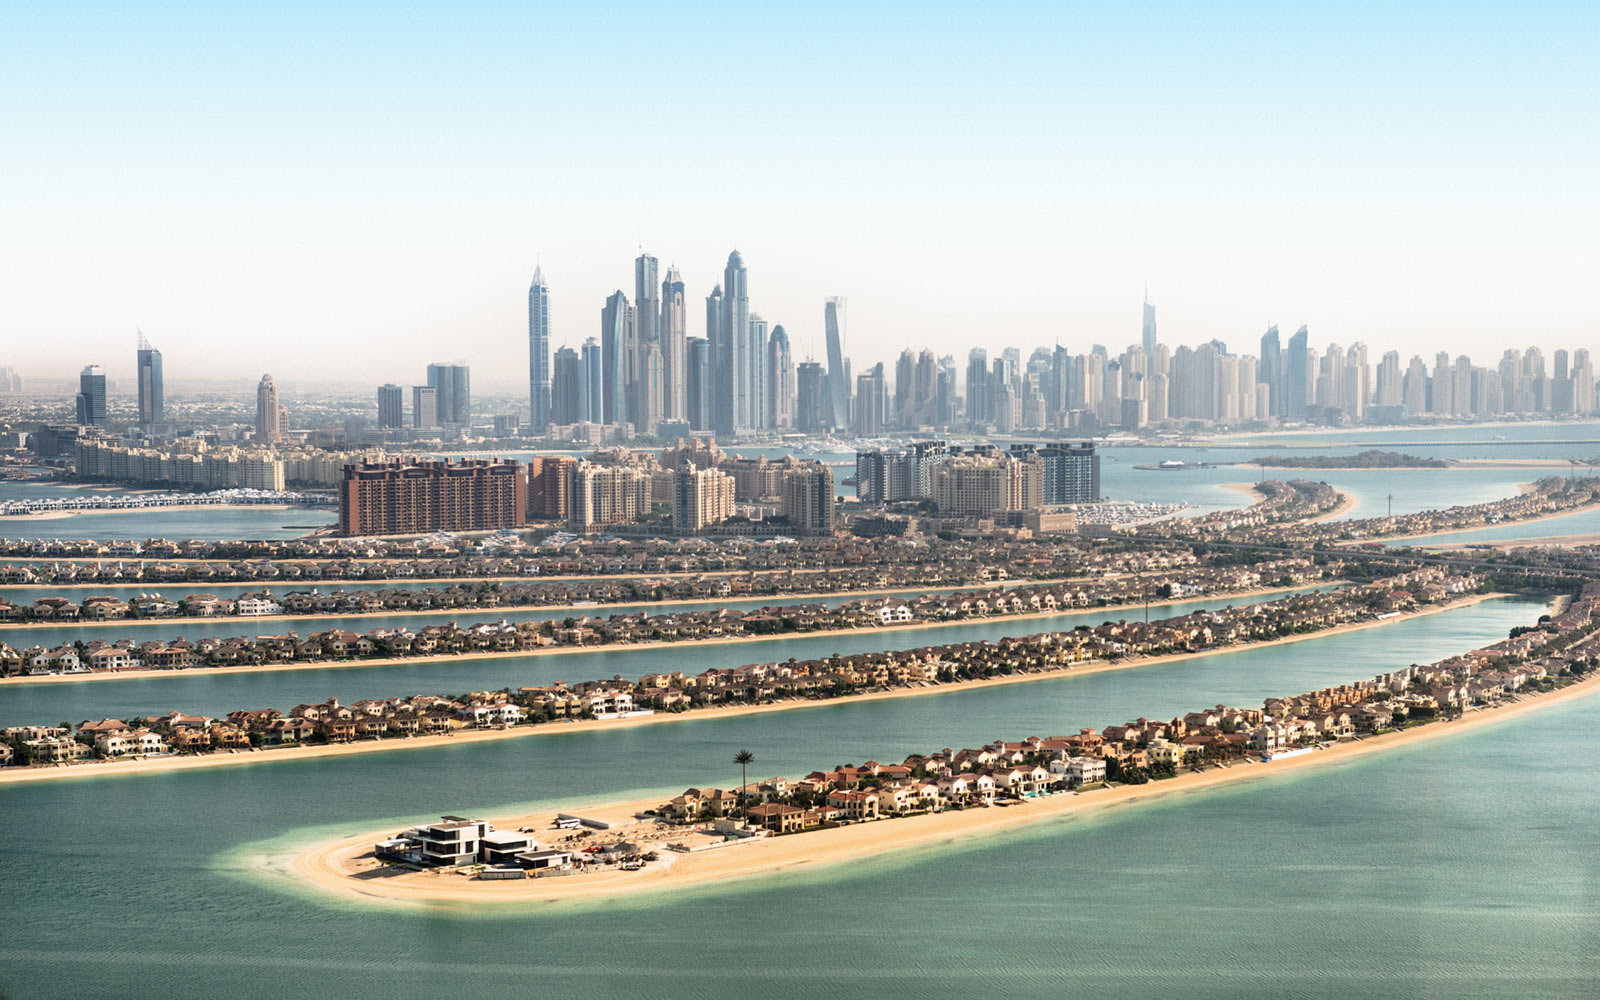 Dubai (UAE) - what sights the city is rich in (photo and video material)